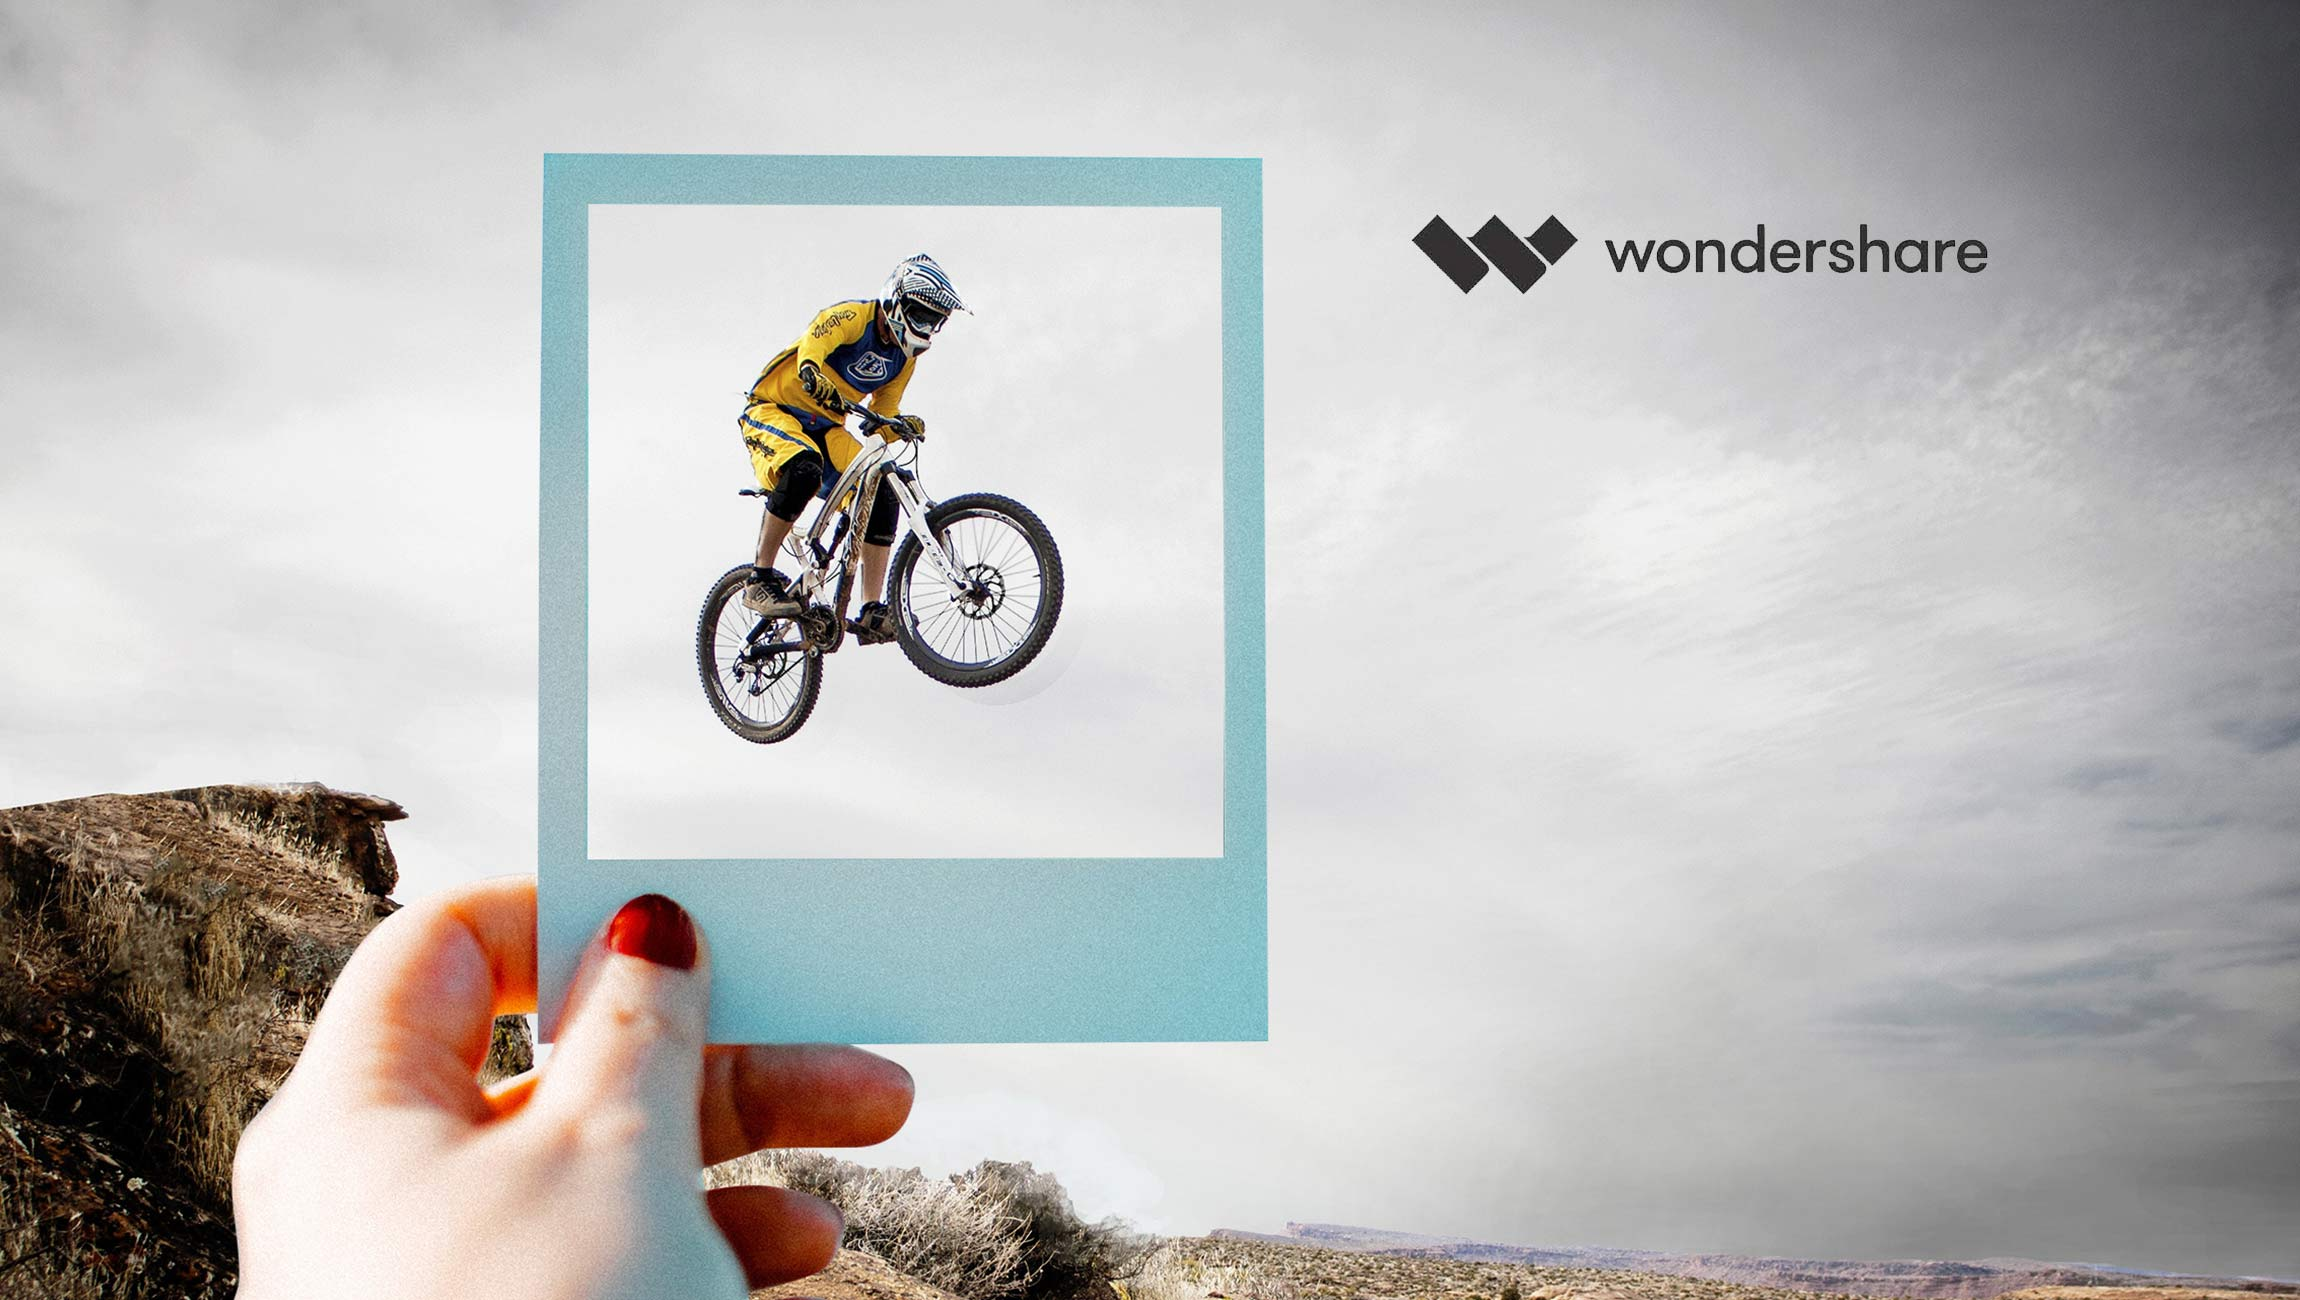 Wondershare DemoCreator Version 4.4 Released with Enhanced Video Editing Features 1